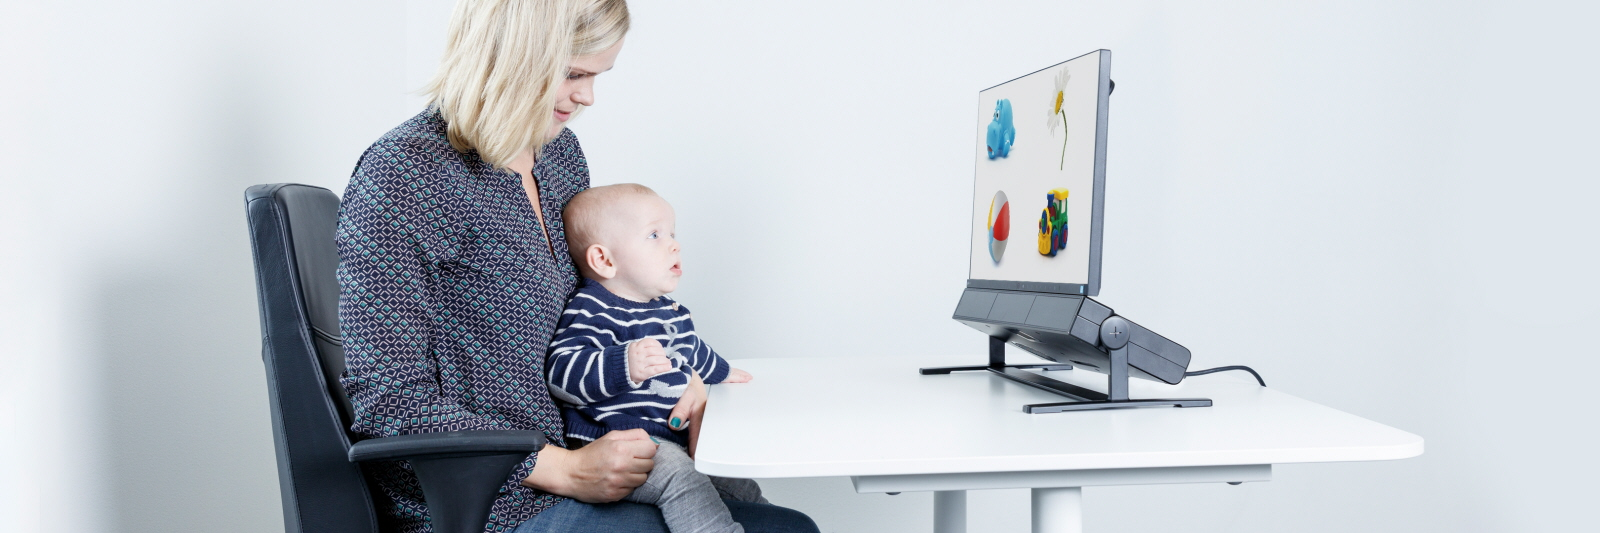 eye tracking in infant and child research tobii pro spectrum eye tracker is used for a developmental research